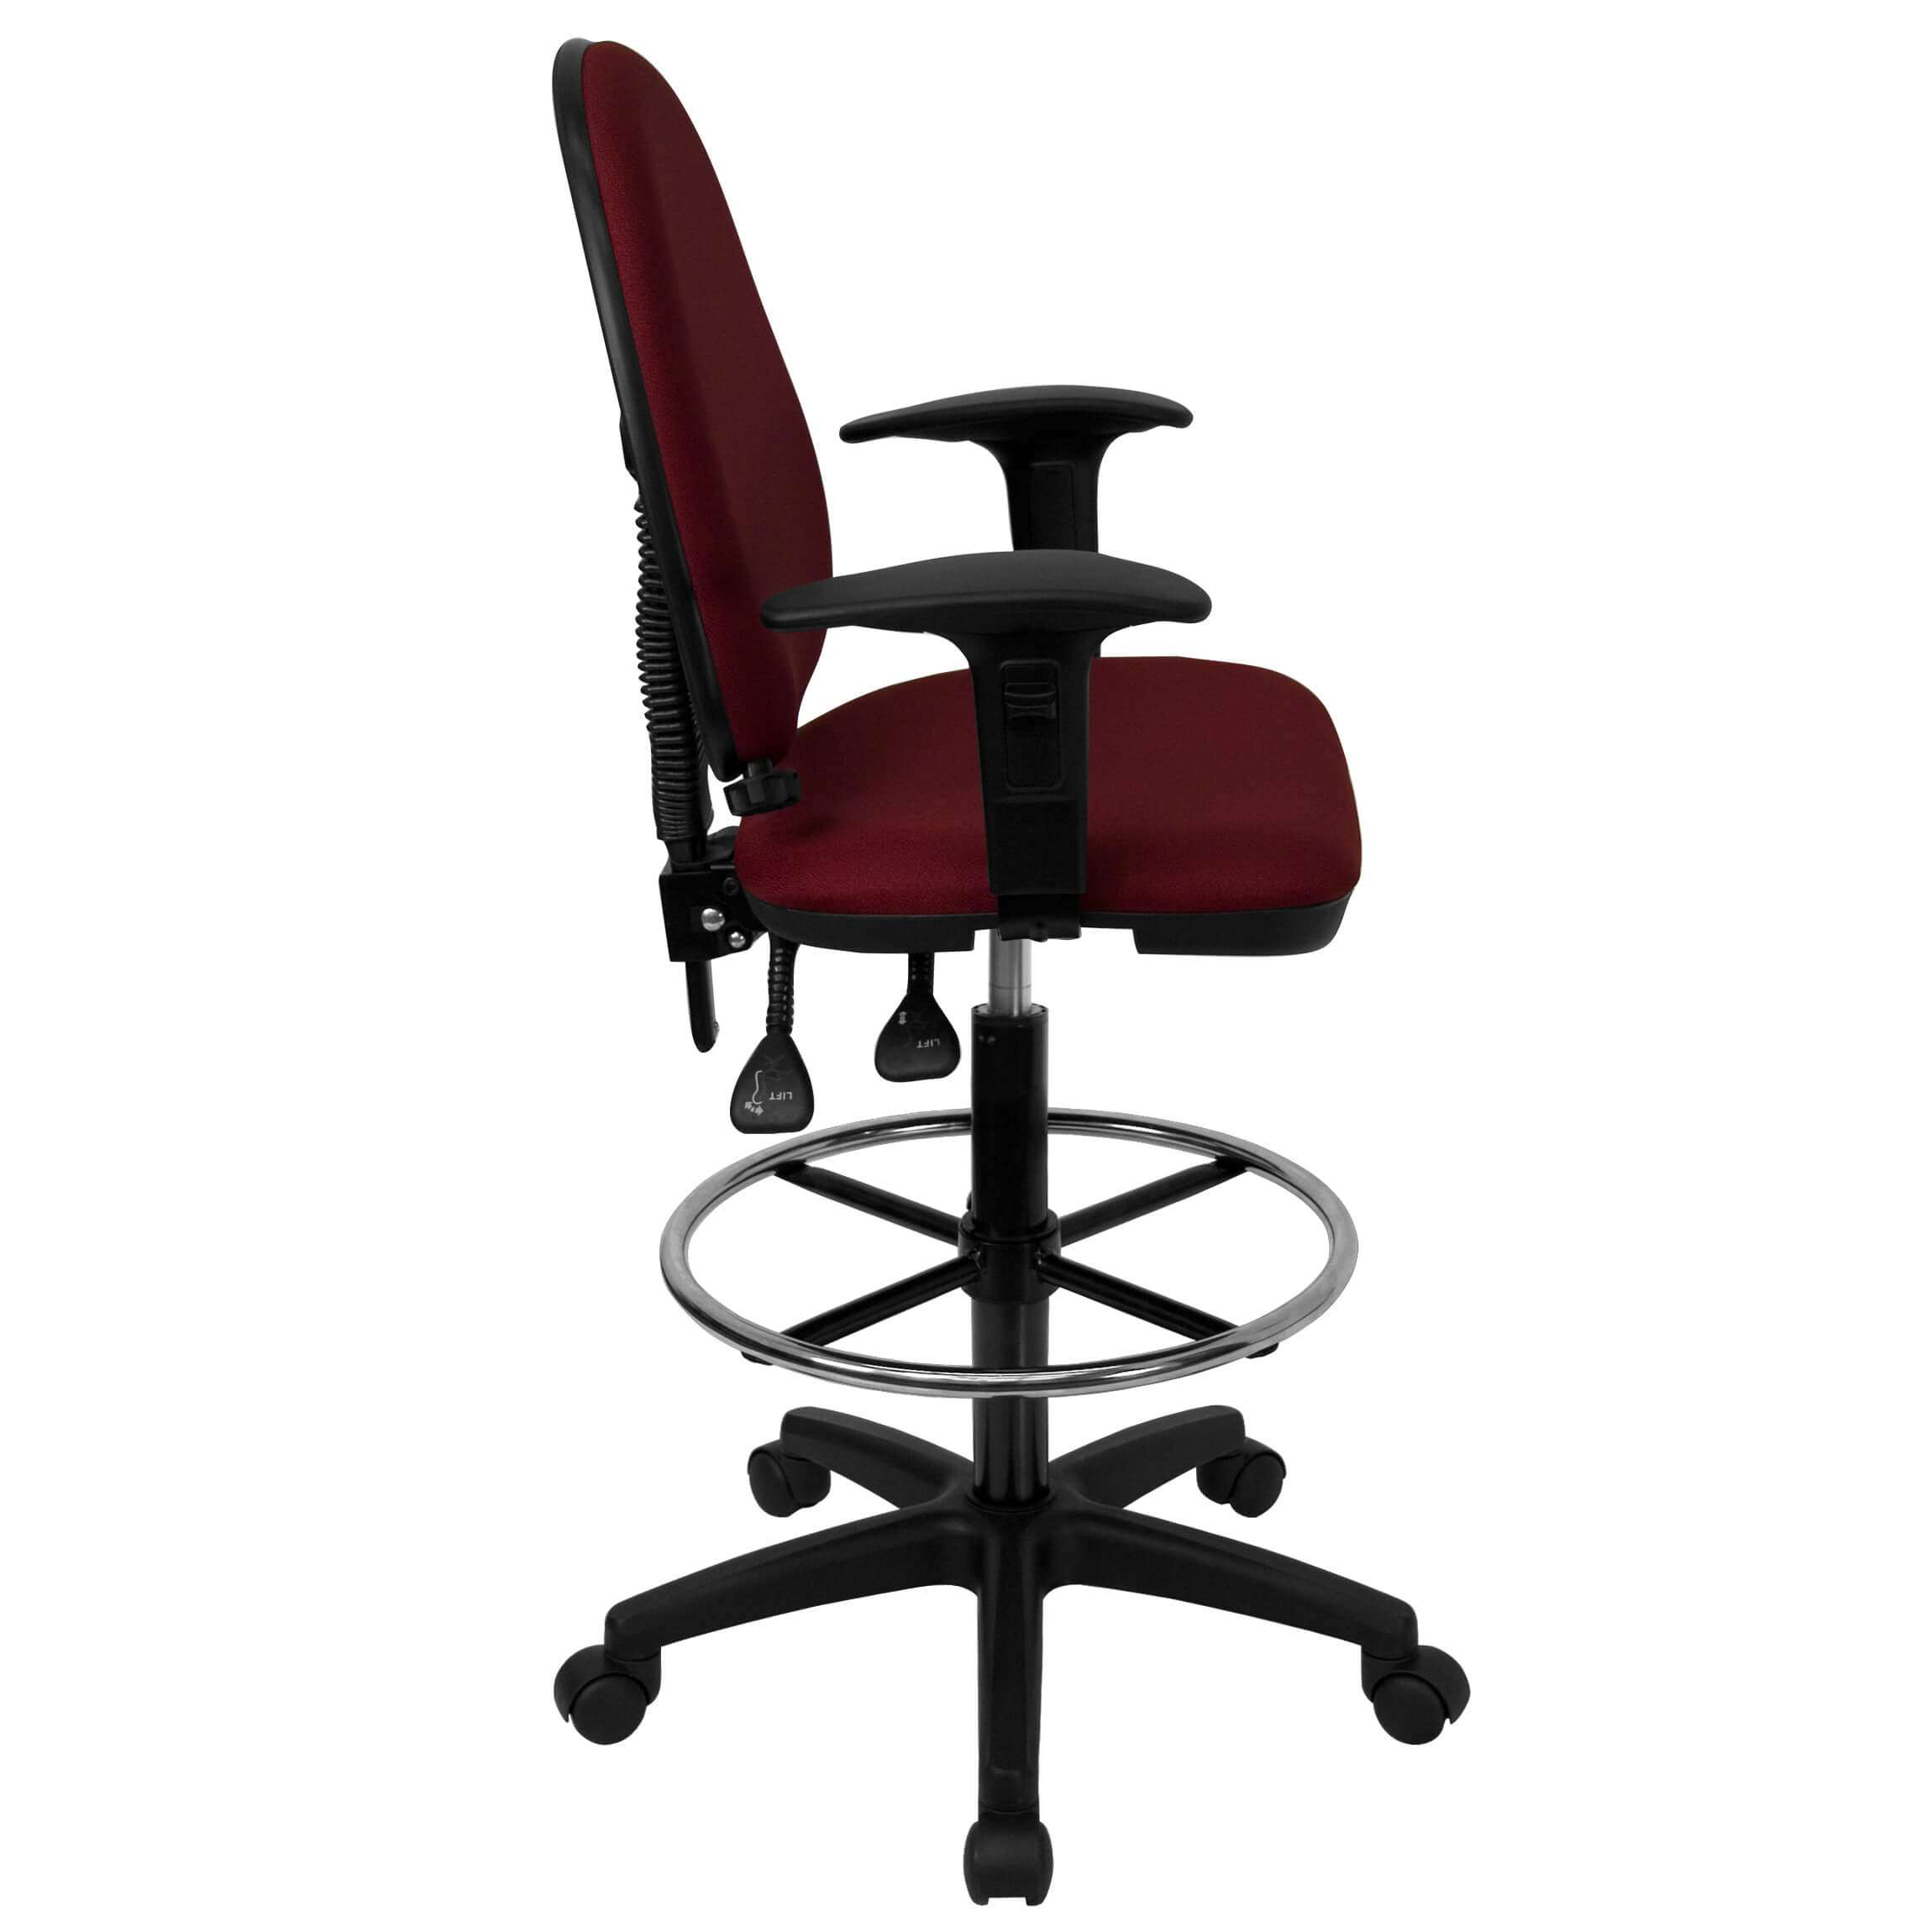 Adjustable drafting chair side view